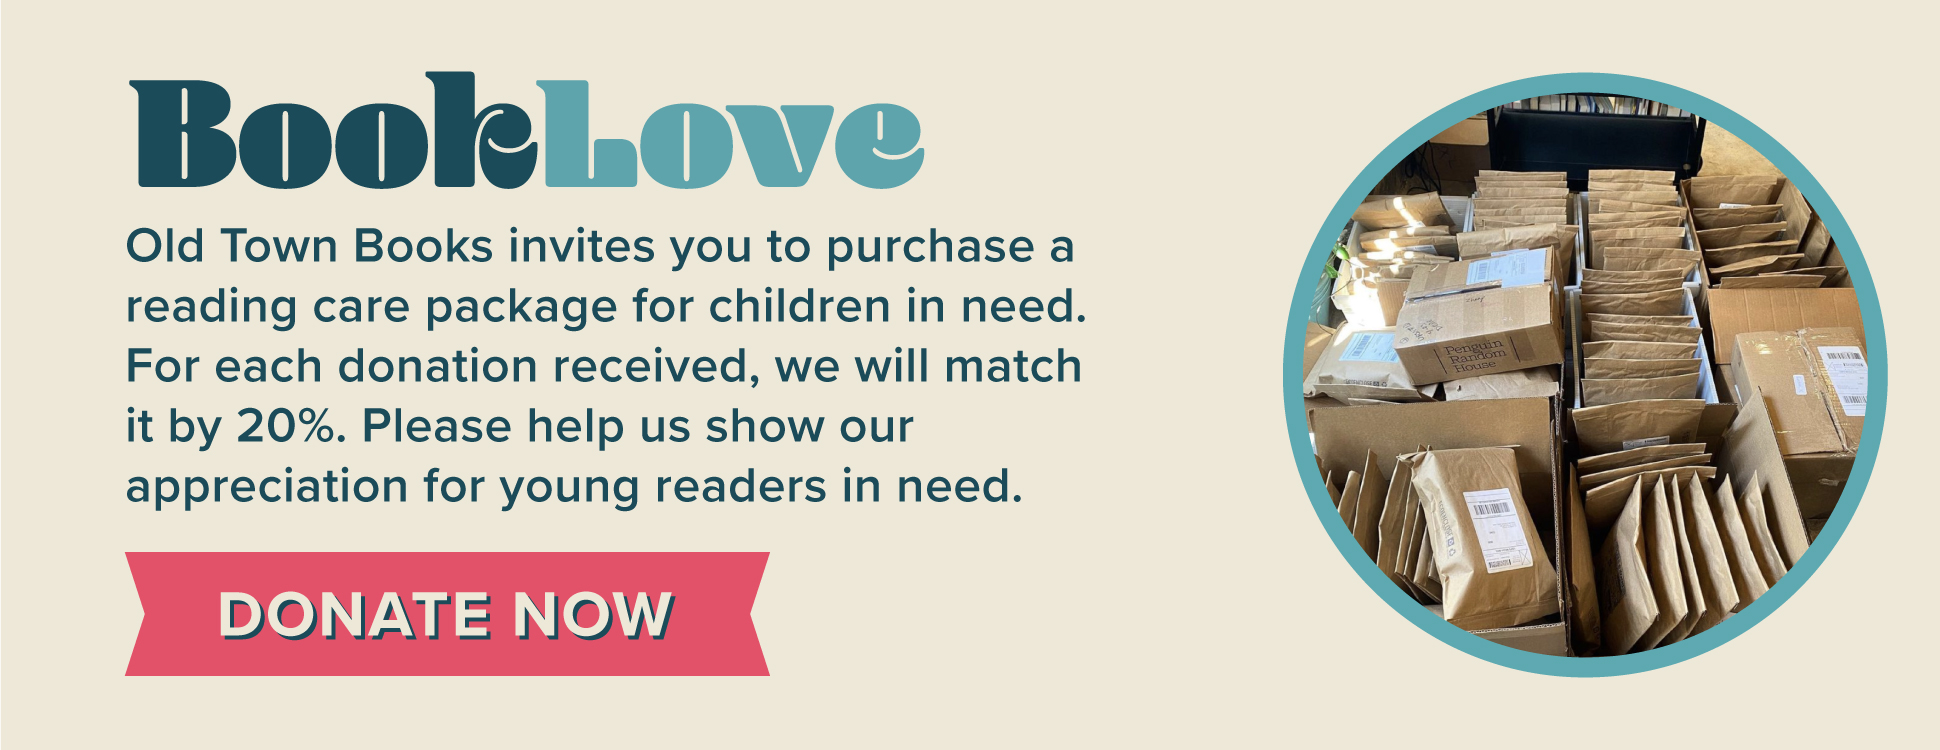 Book Love. Click here to learn more about our reading care packages for children in need. For each donation received, Old Town Books will match it by 20 percent.